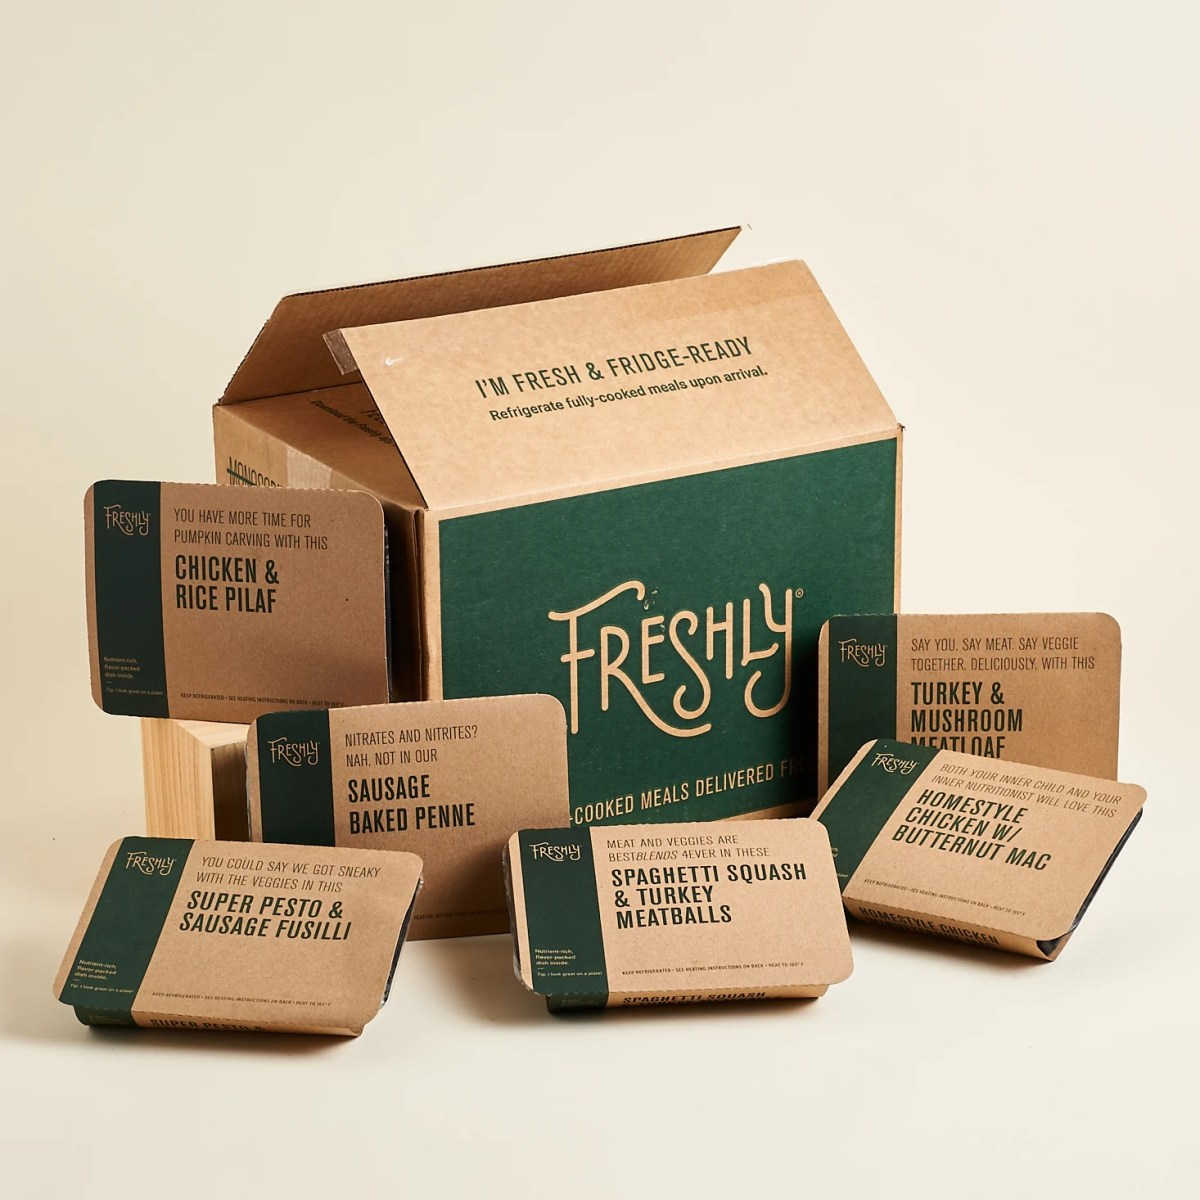 Example of sustainable food packaging